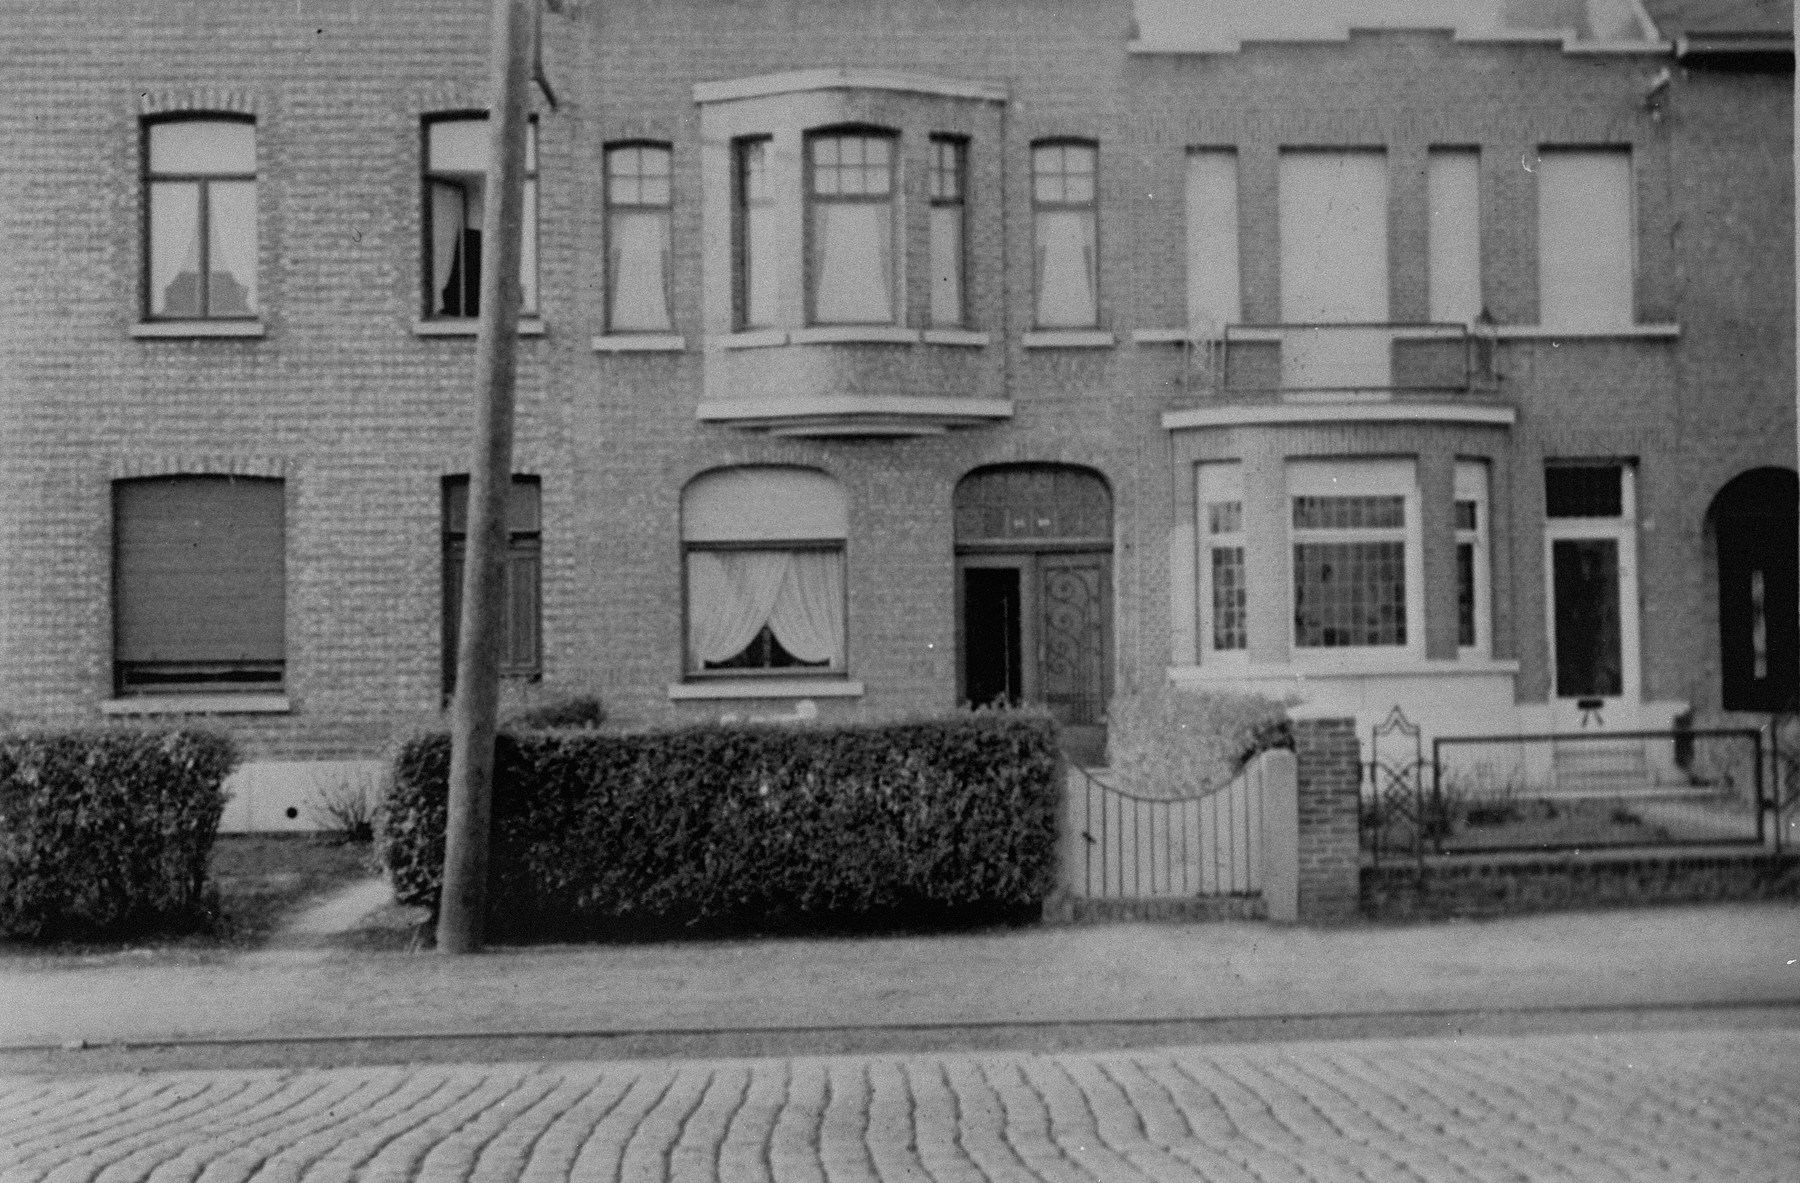 View of the van Buggenhout family home located at Mechelseoteenweg 82 in Rumst, where Margo and Annette Lederman lived in hiding during the war.